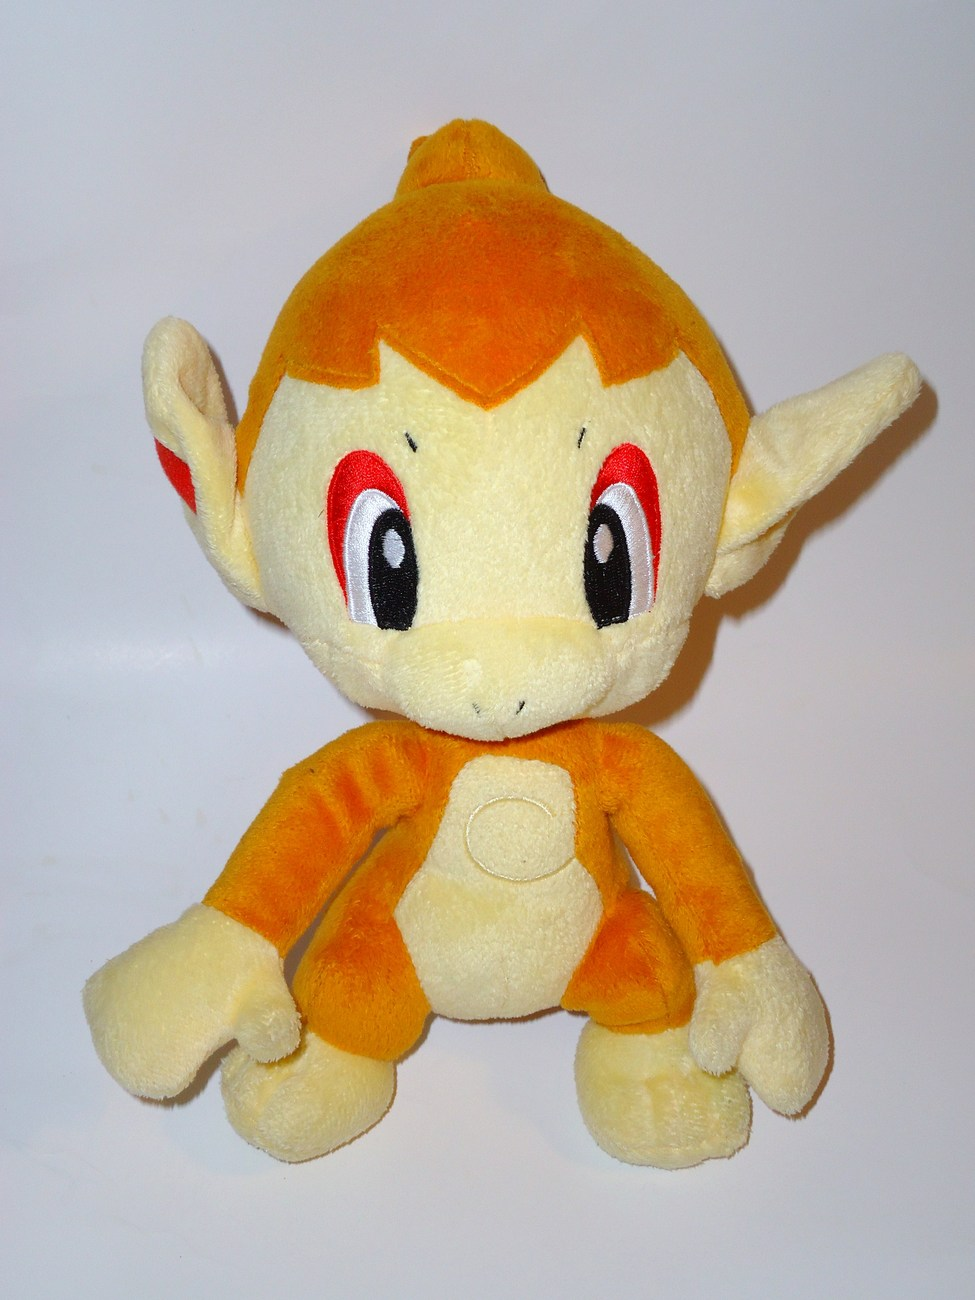 Pokemon Talking Chimchar Orange Fire Monkey Plush Stuffed Animal Jakks Pacific